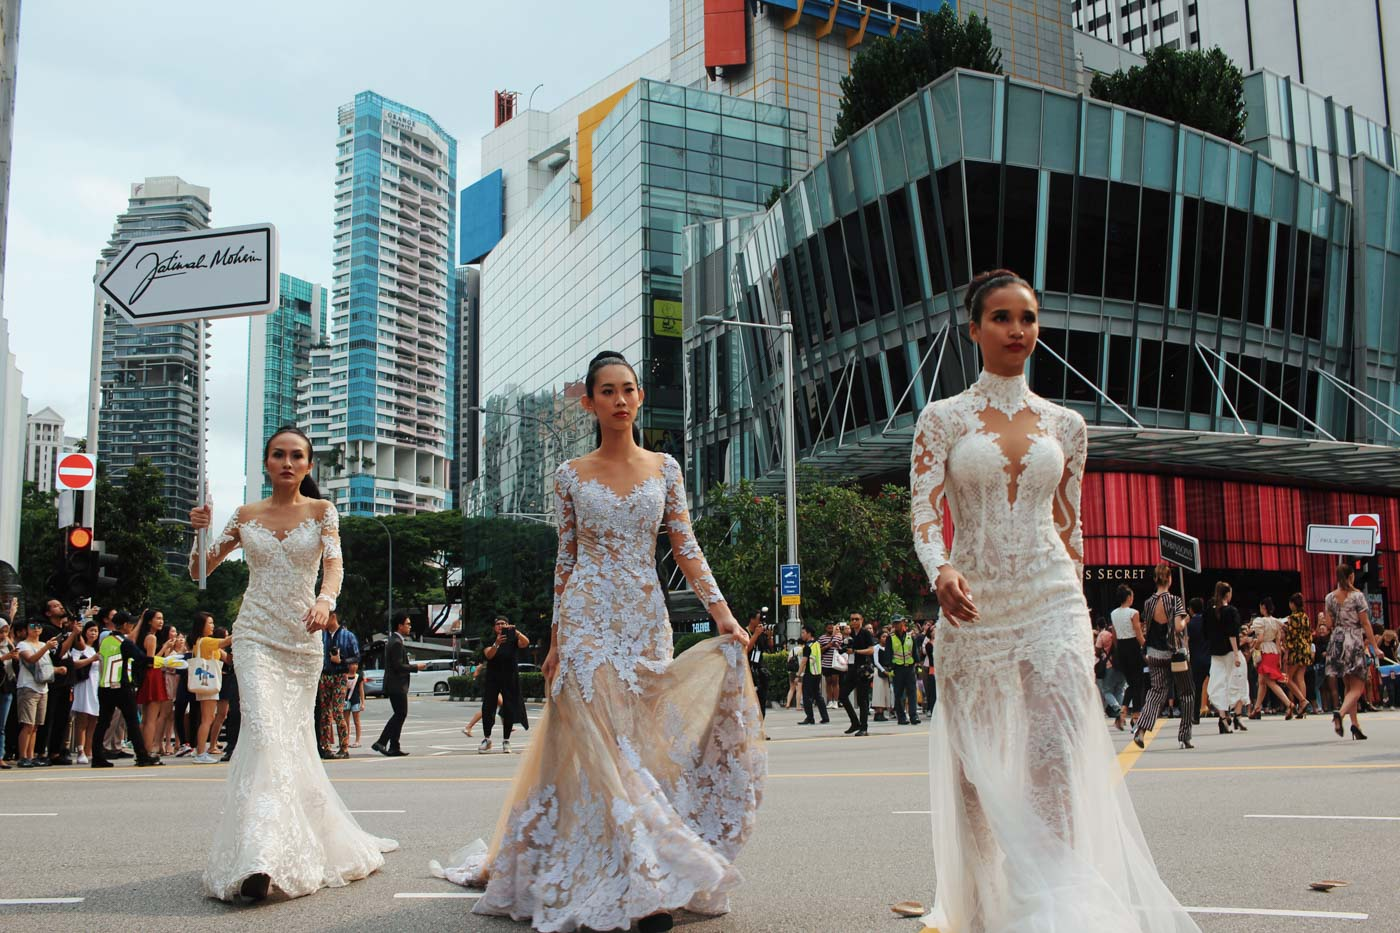 FASHION SCRAMBLE. To open GSS Experience Singapore, a hundred models took to Orchard Road and turned it into a fashion runway. All photos by Tristan Zinampan/Rappler